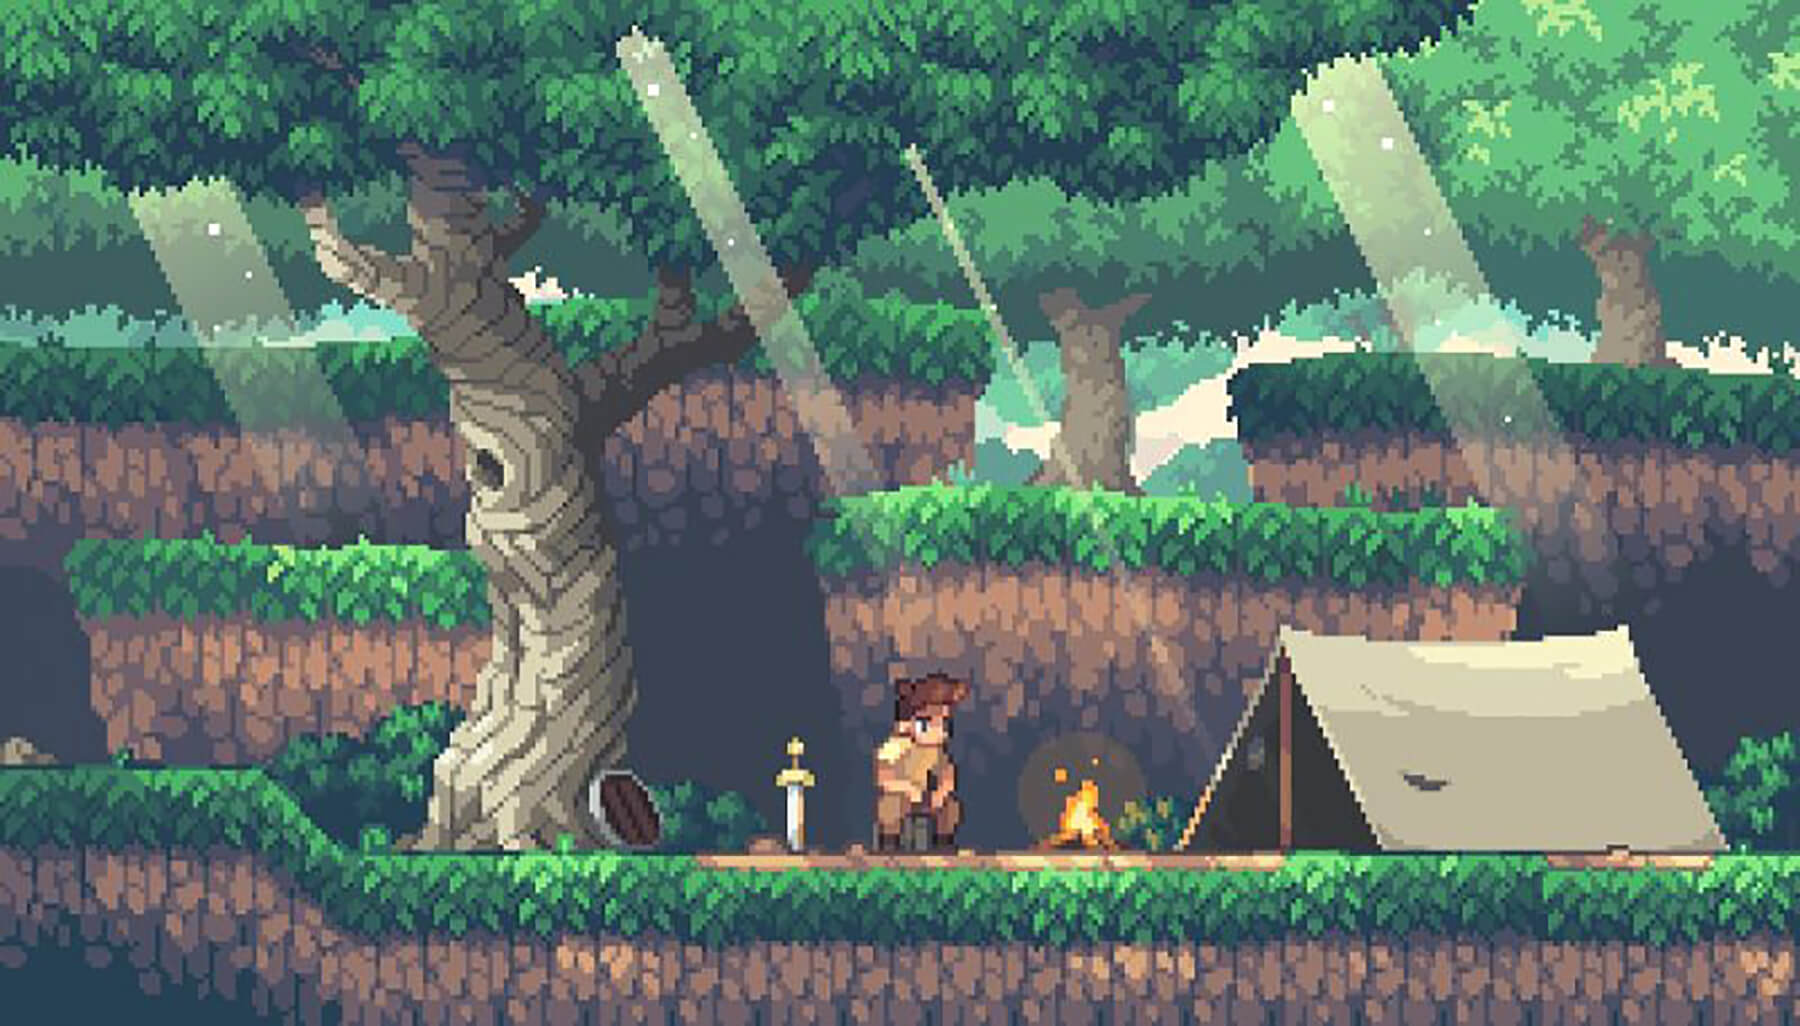 Pixel art of a young man in a forest campsite sitting next to a sword and shield, fire, and tent.